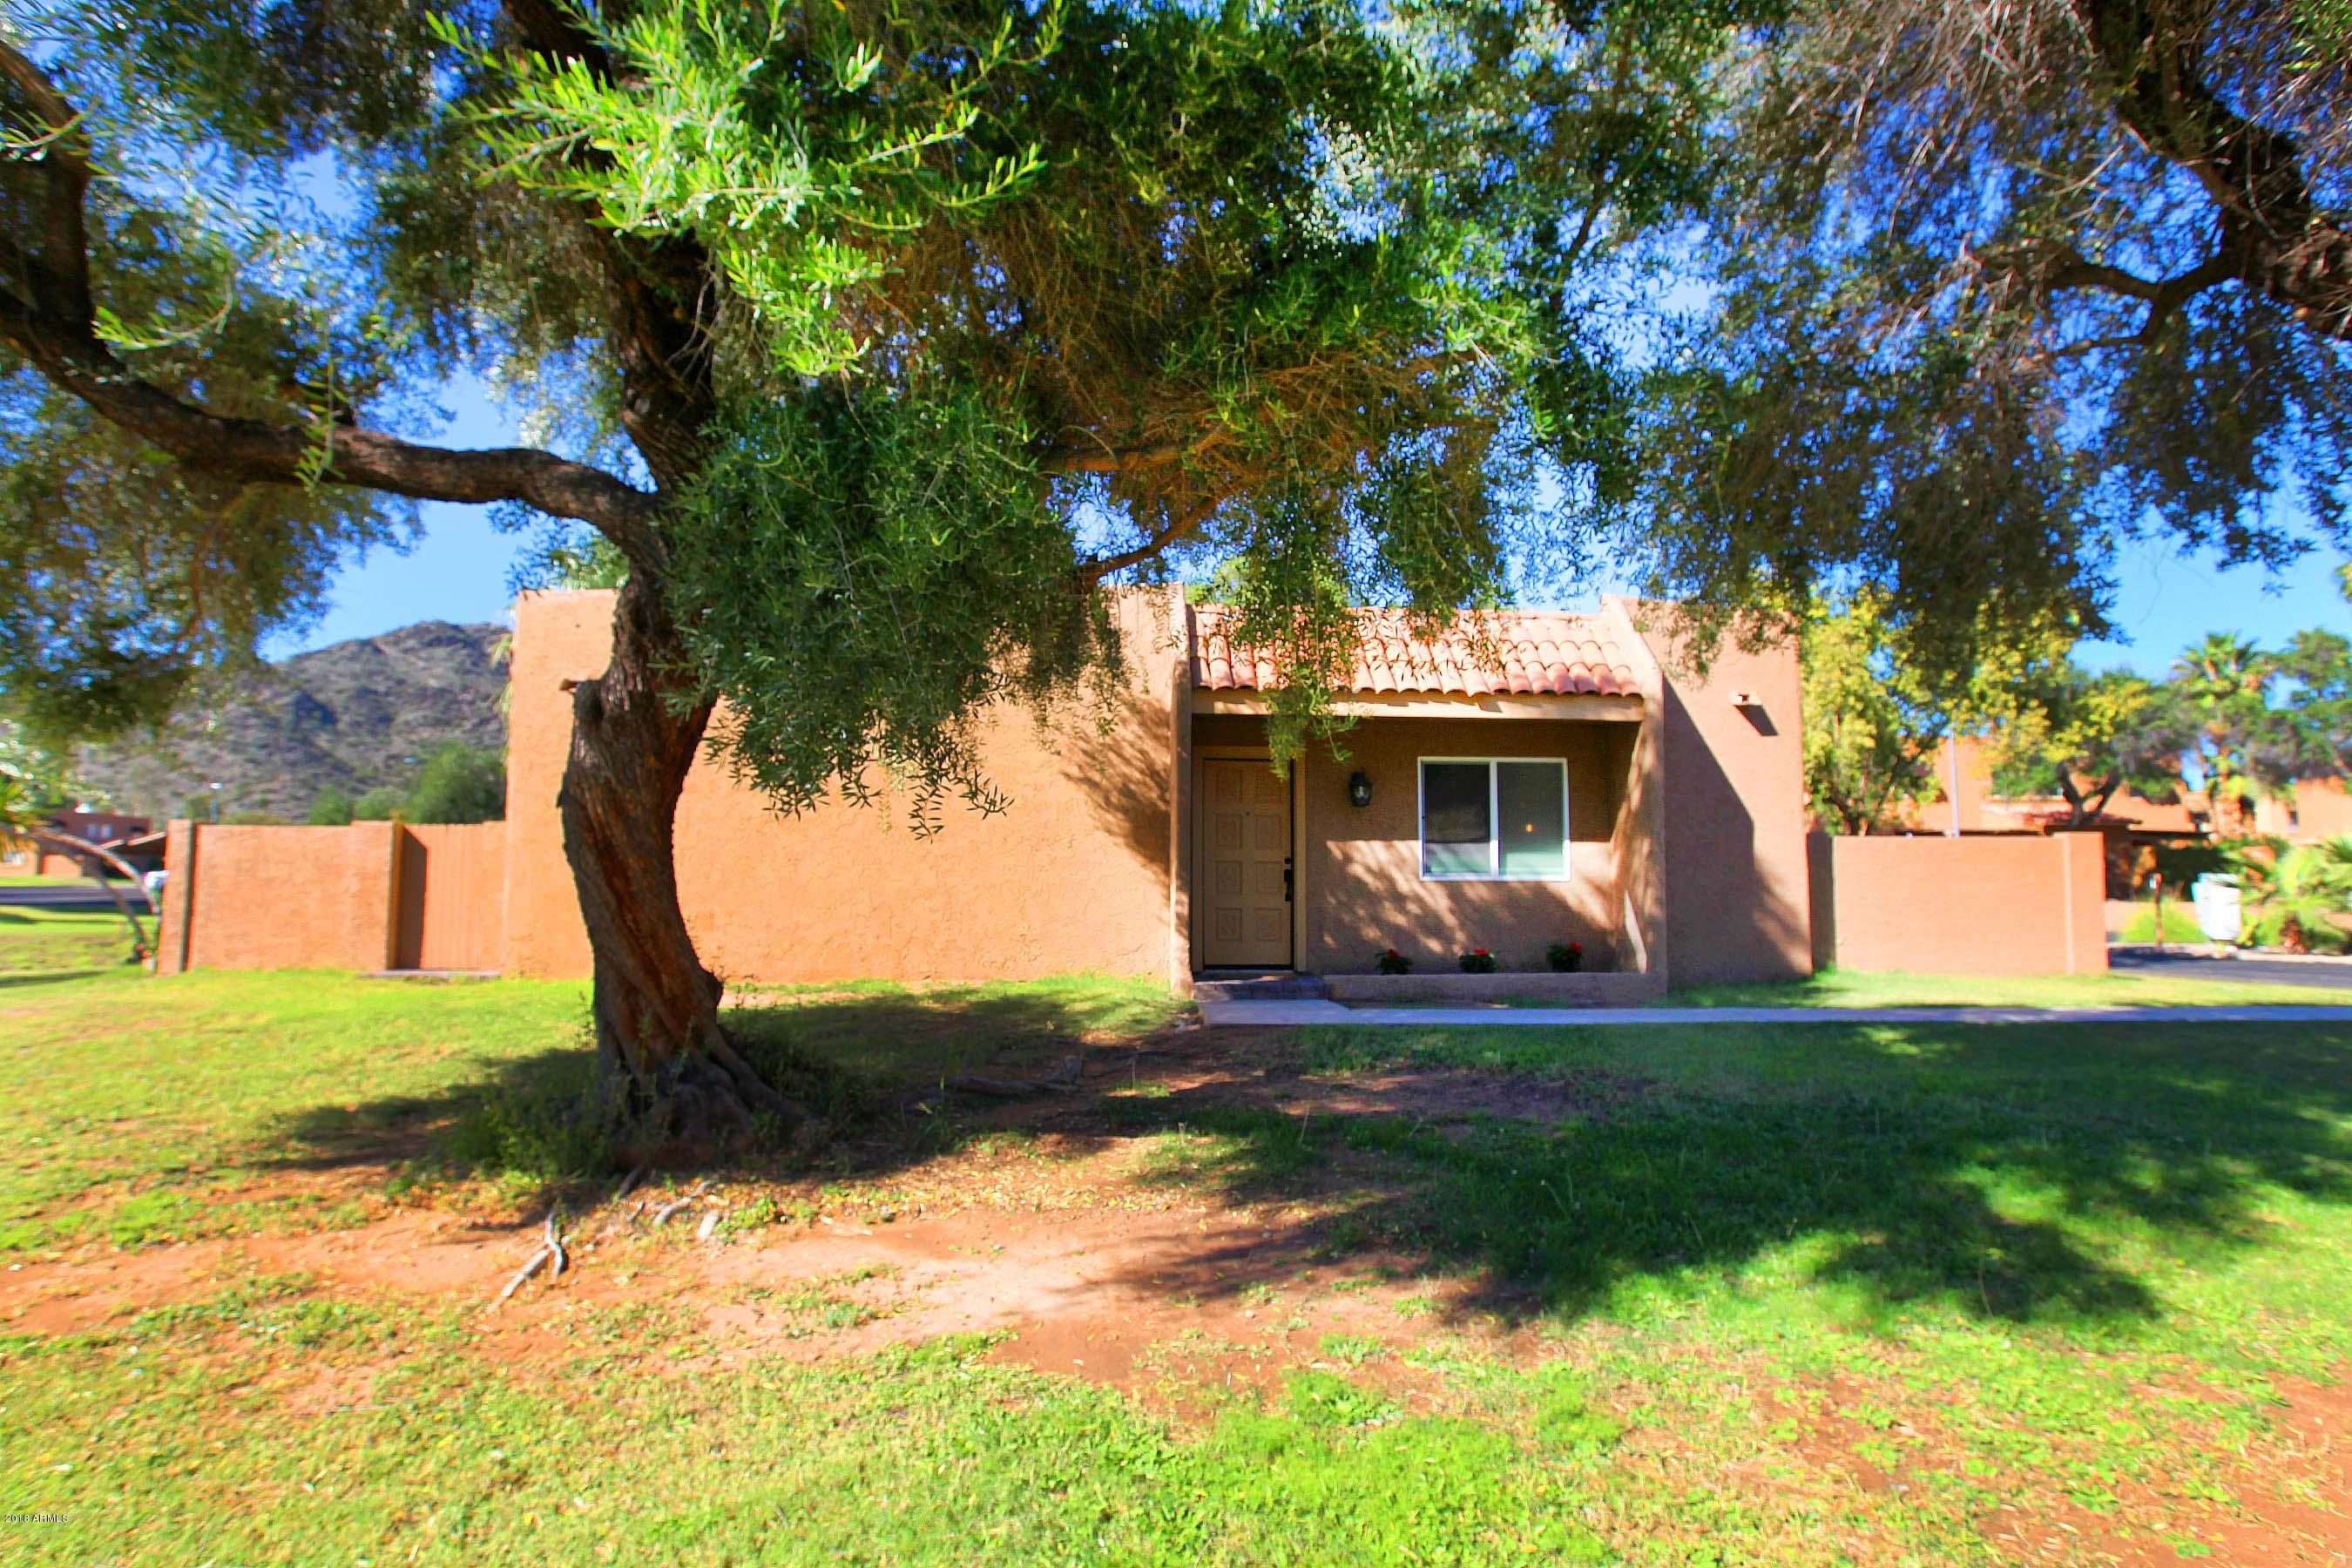 Photo of 841 E COCHISE Drive, Phoenix, AZ 85020